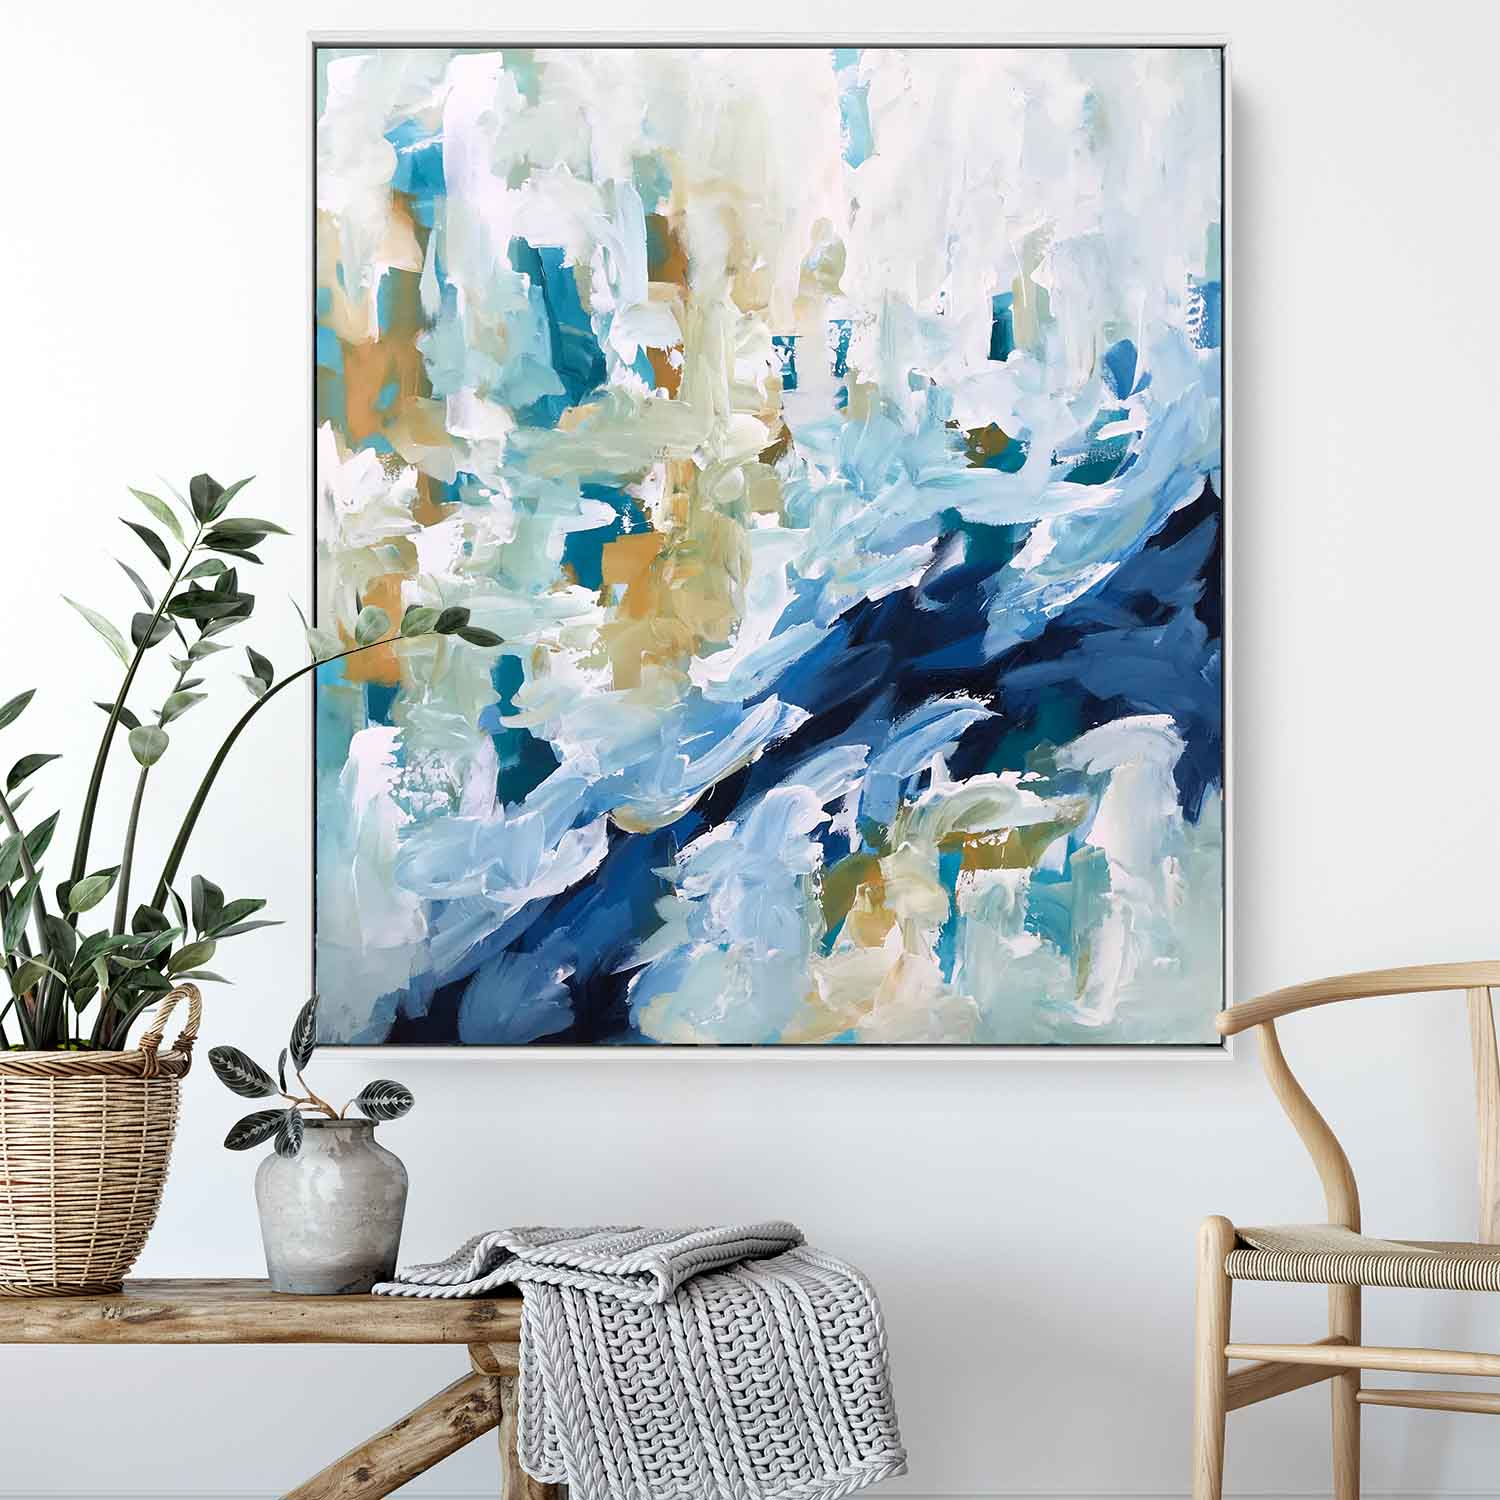 When The Moment Comes Part 2 - 92x102 cm - Original Painting